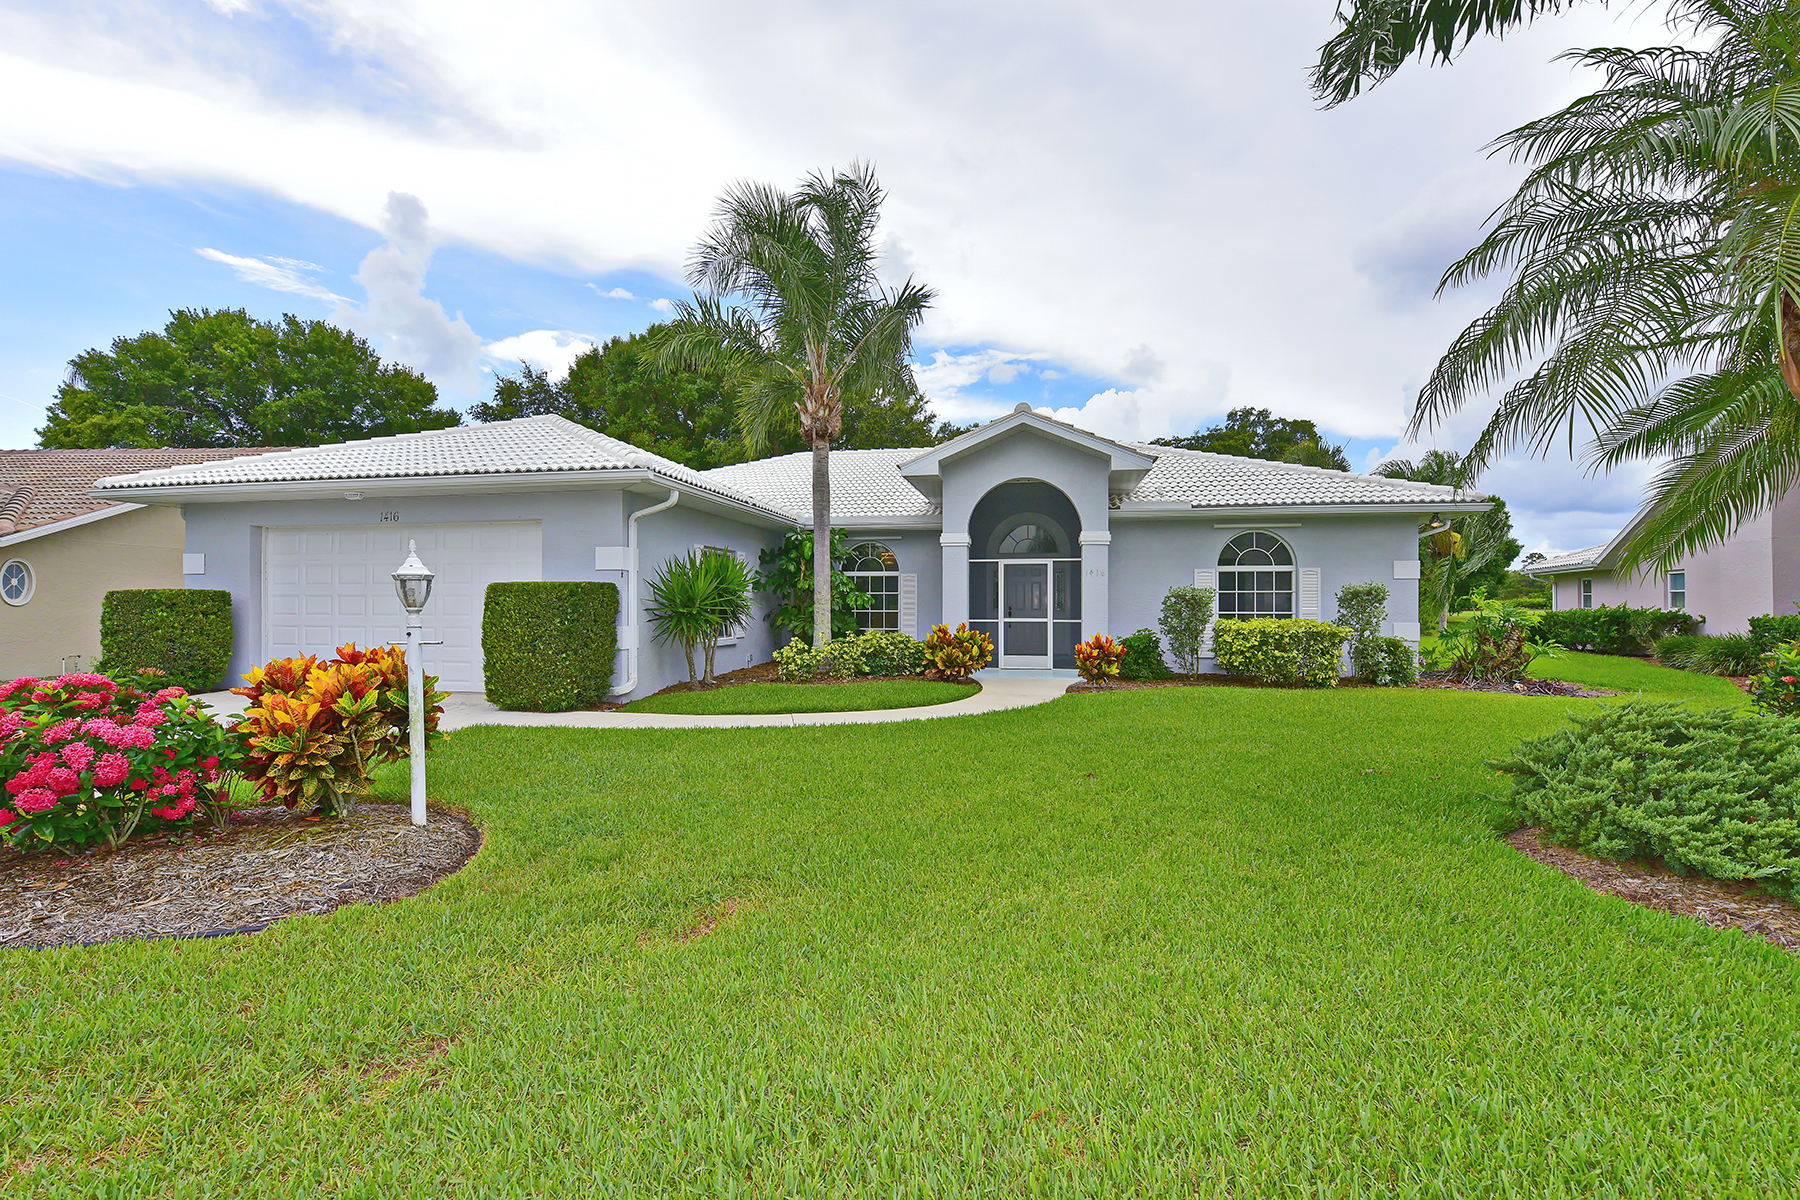 Single Family Home for Sale at WATERFORD 1416 Gleneagles Dr Venice, Florida 34292 United States